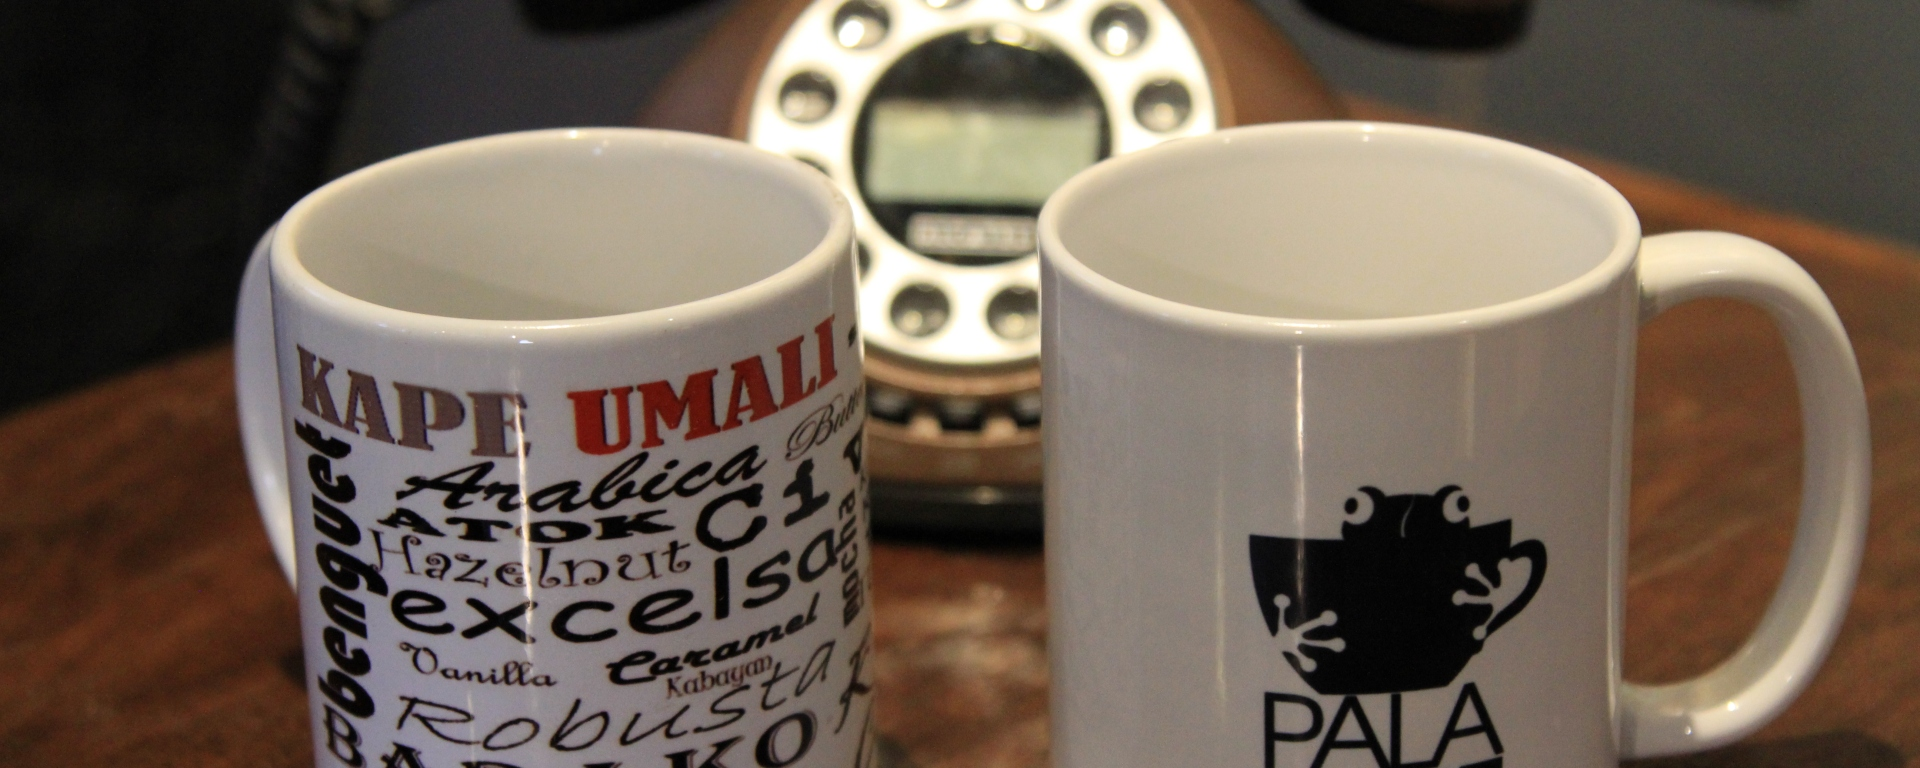 Kape Umali and Palakape mugs near vintage telephone